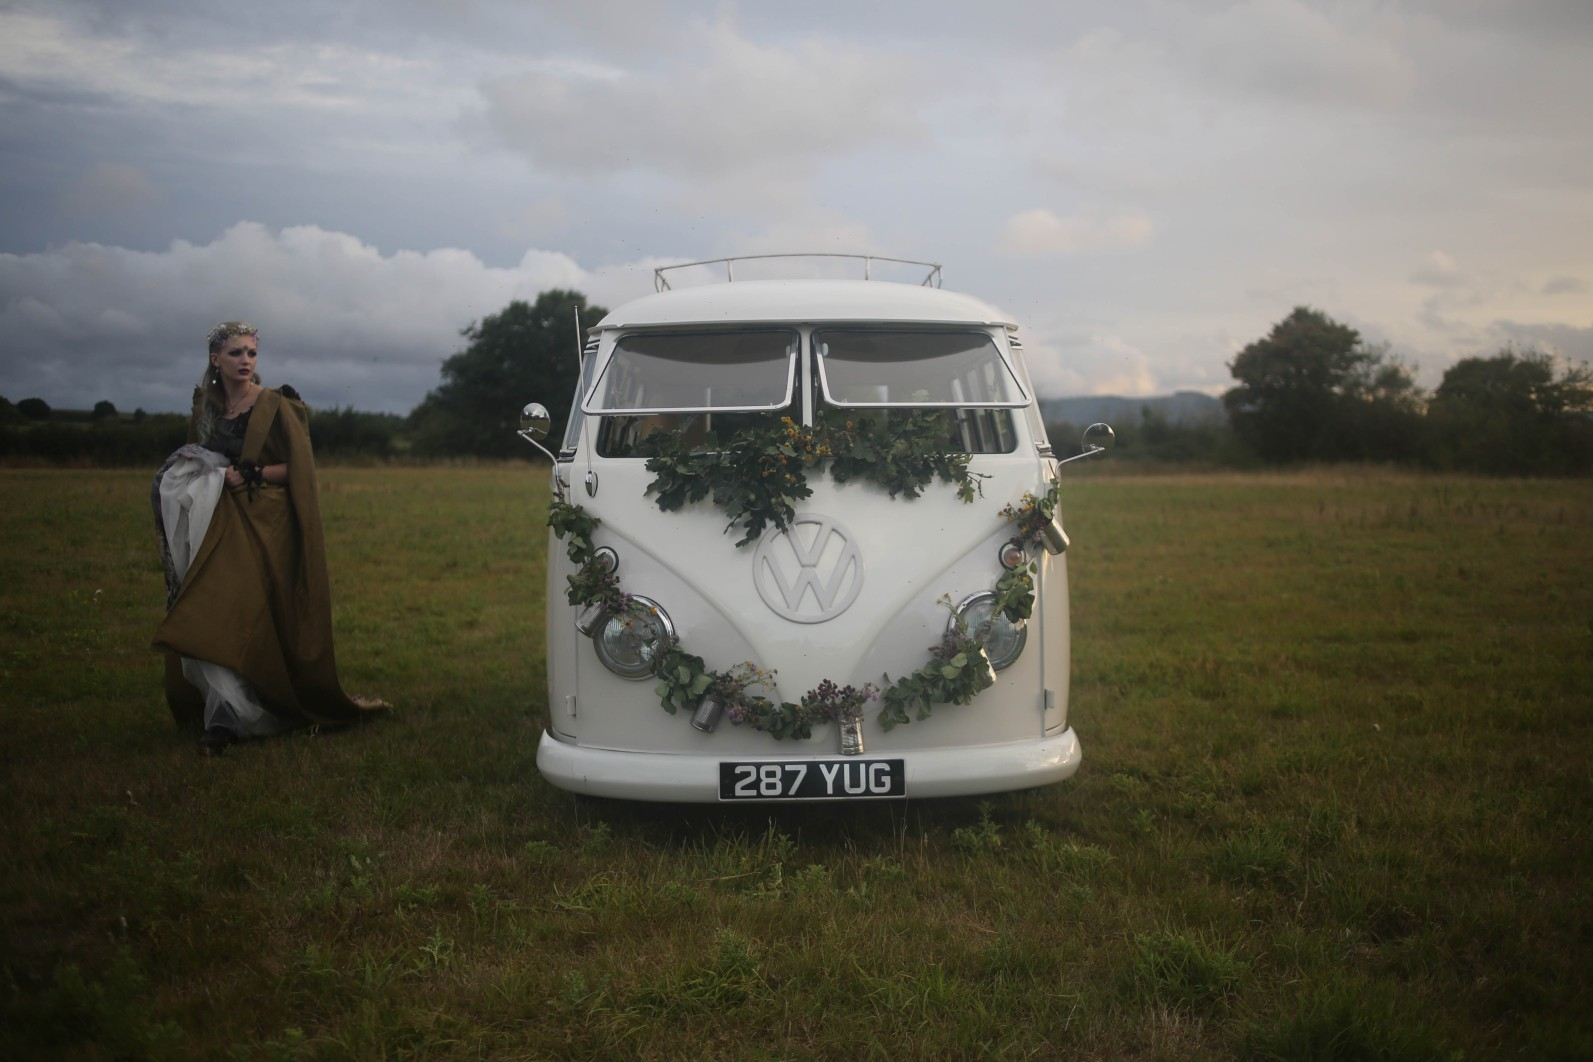 nature wedding - pagan wedding - ethereal wedding - spiritual wedding - alternative wedding - mystical wedding - quirky wedding - wedding camper van